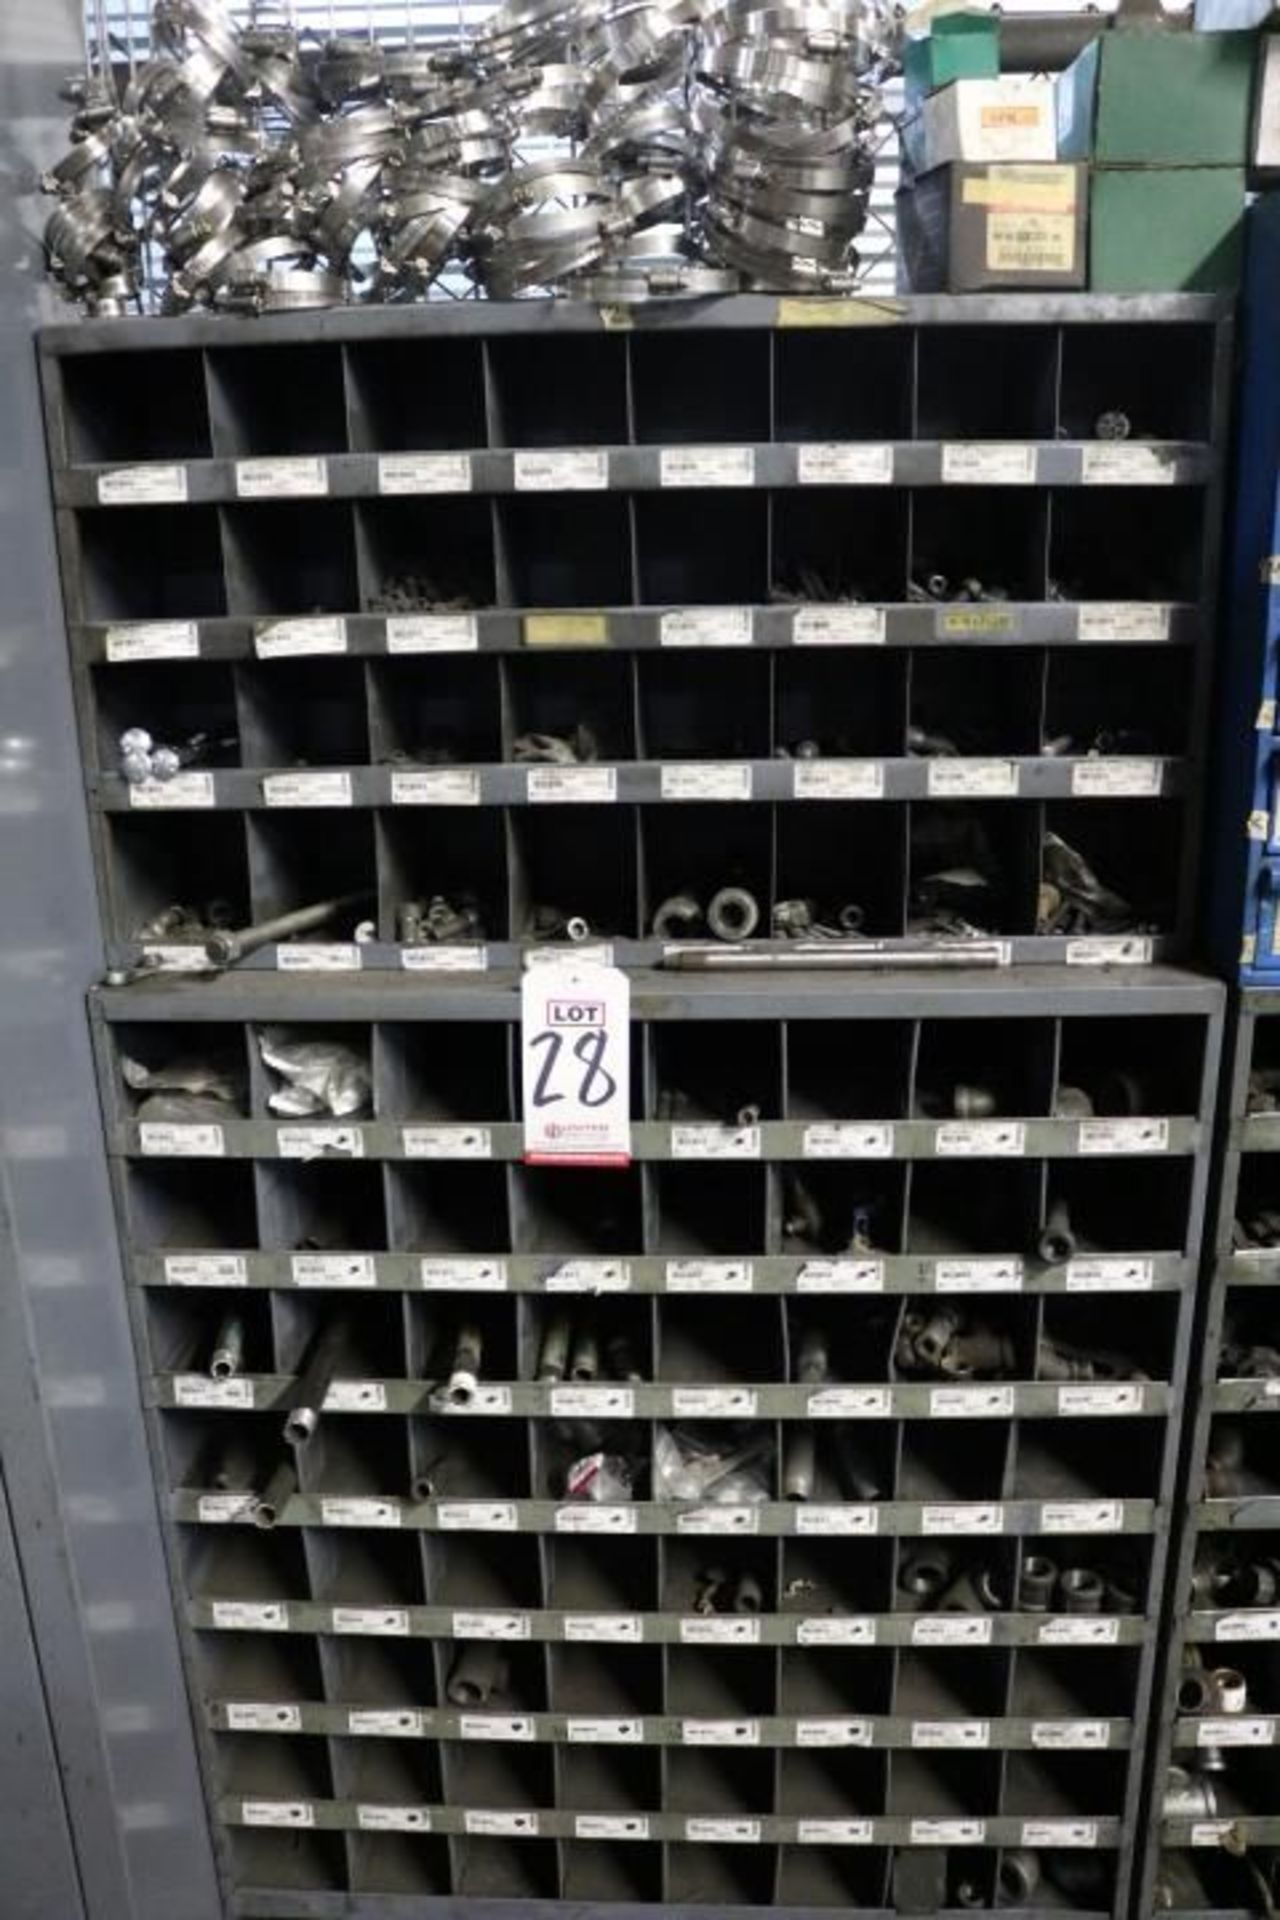 Lot 28 - HARDWARE CABINET W/ HOSE CLAMPS, STEEL ALLOY SCREWS, GALVANIZED STEEL ELBOWS, ETC.